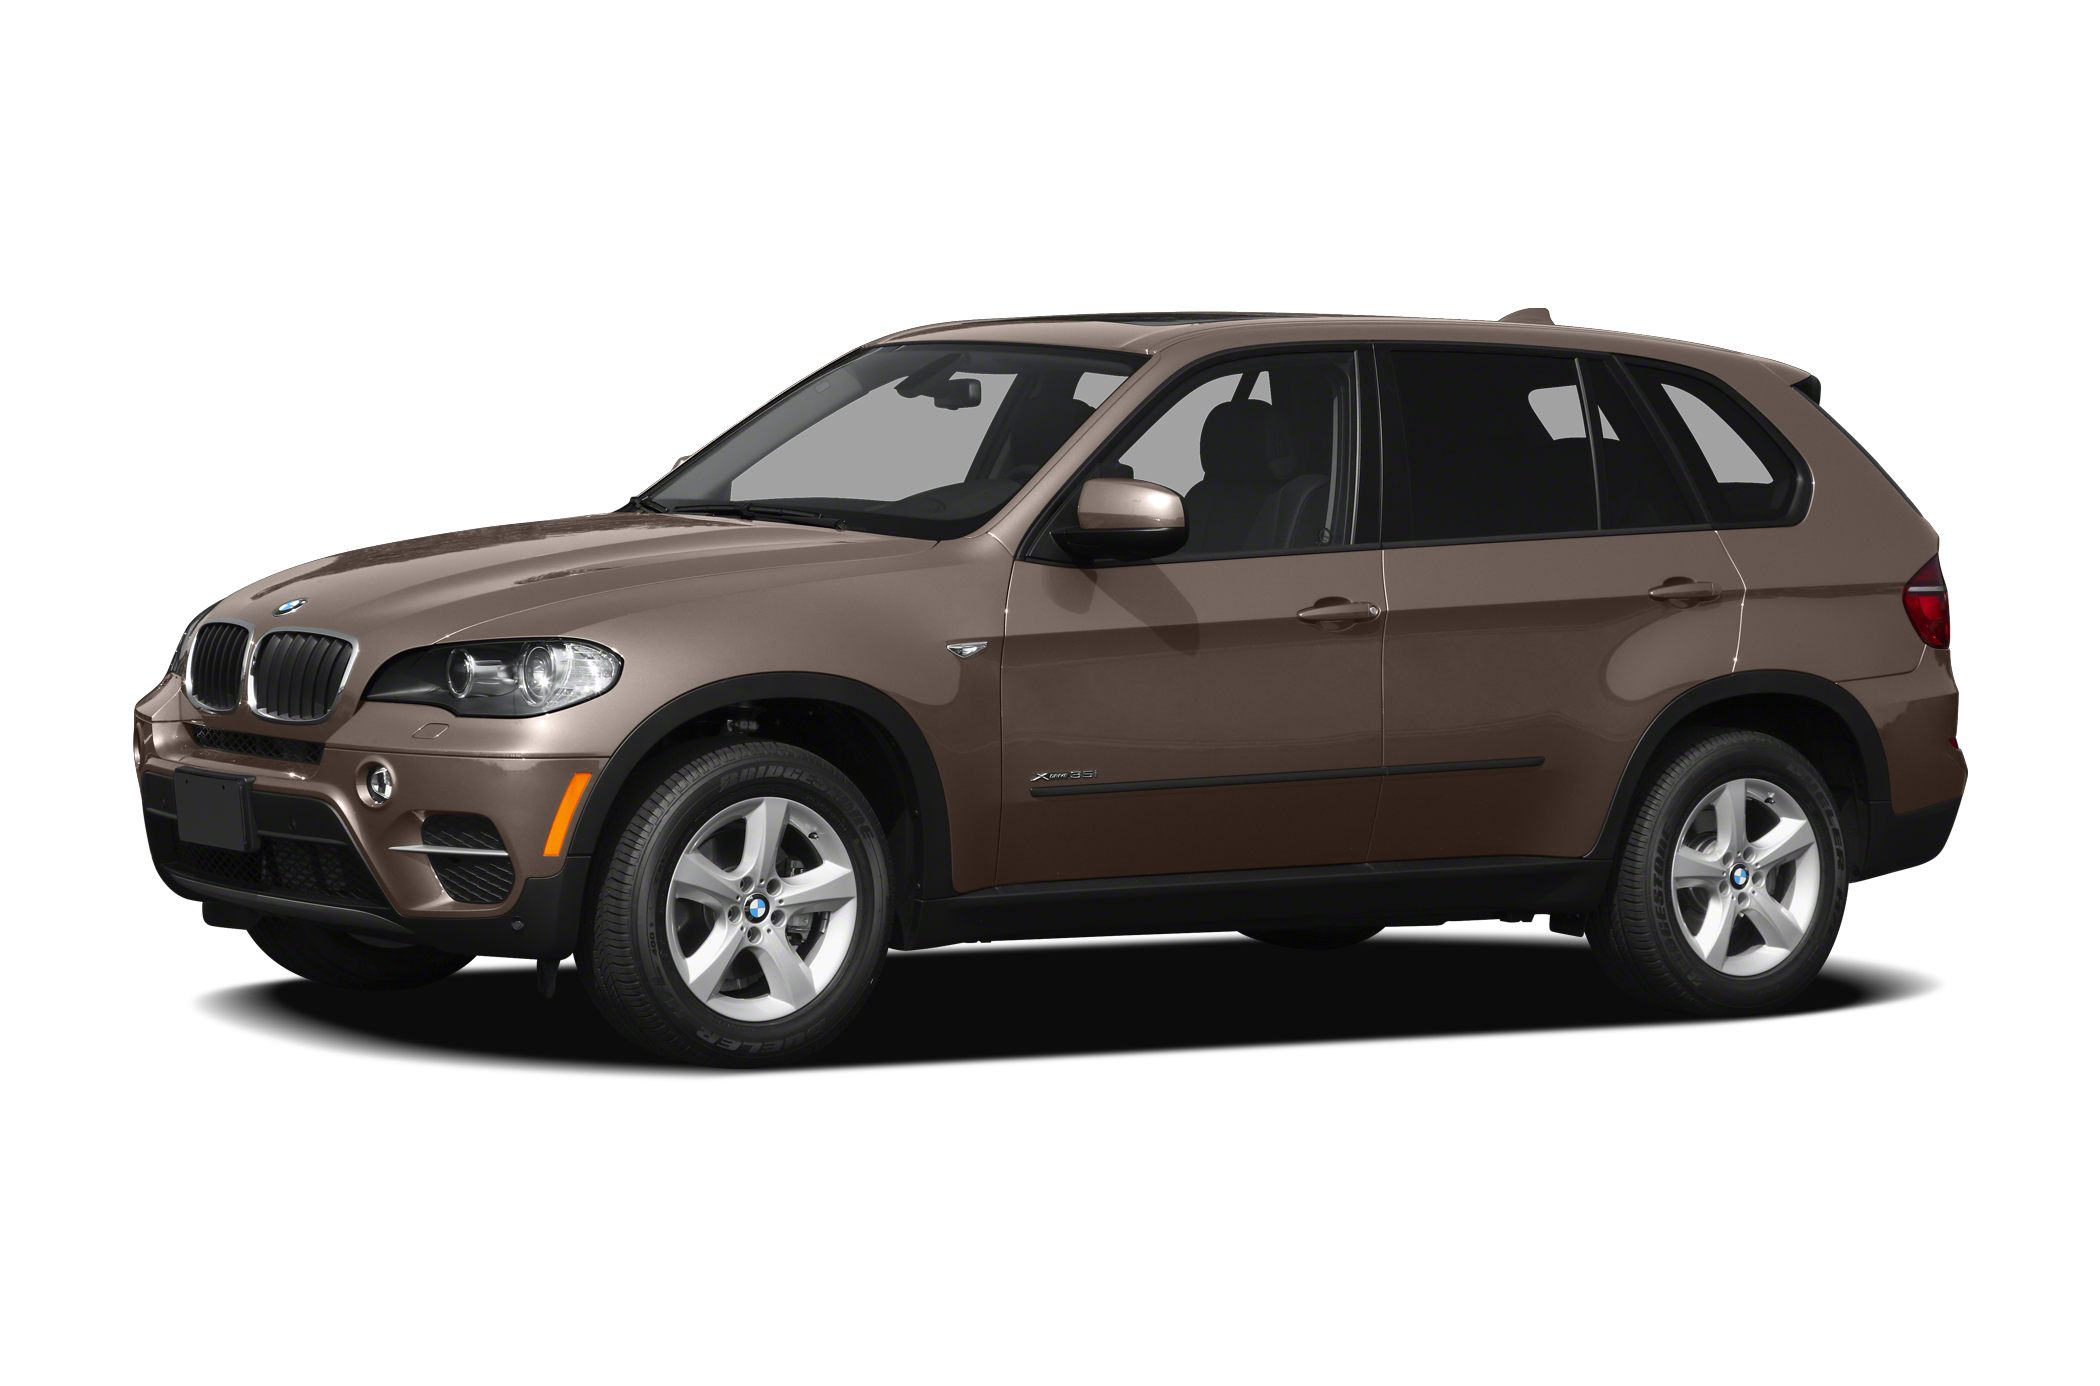 2012 BMW X5 XDrive35d SUV for sale in Amarillo for $39,680 with 27,265 miles.